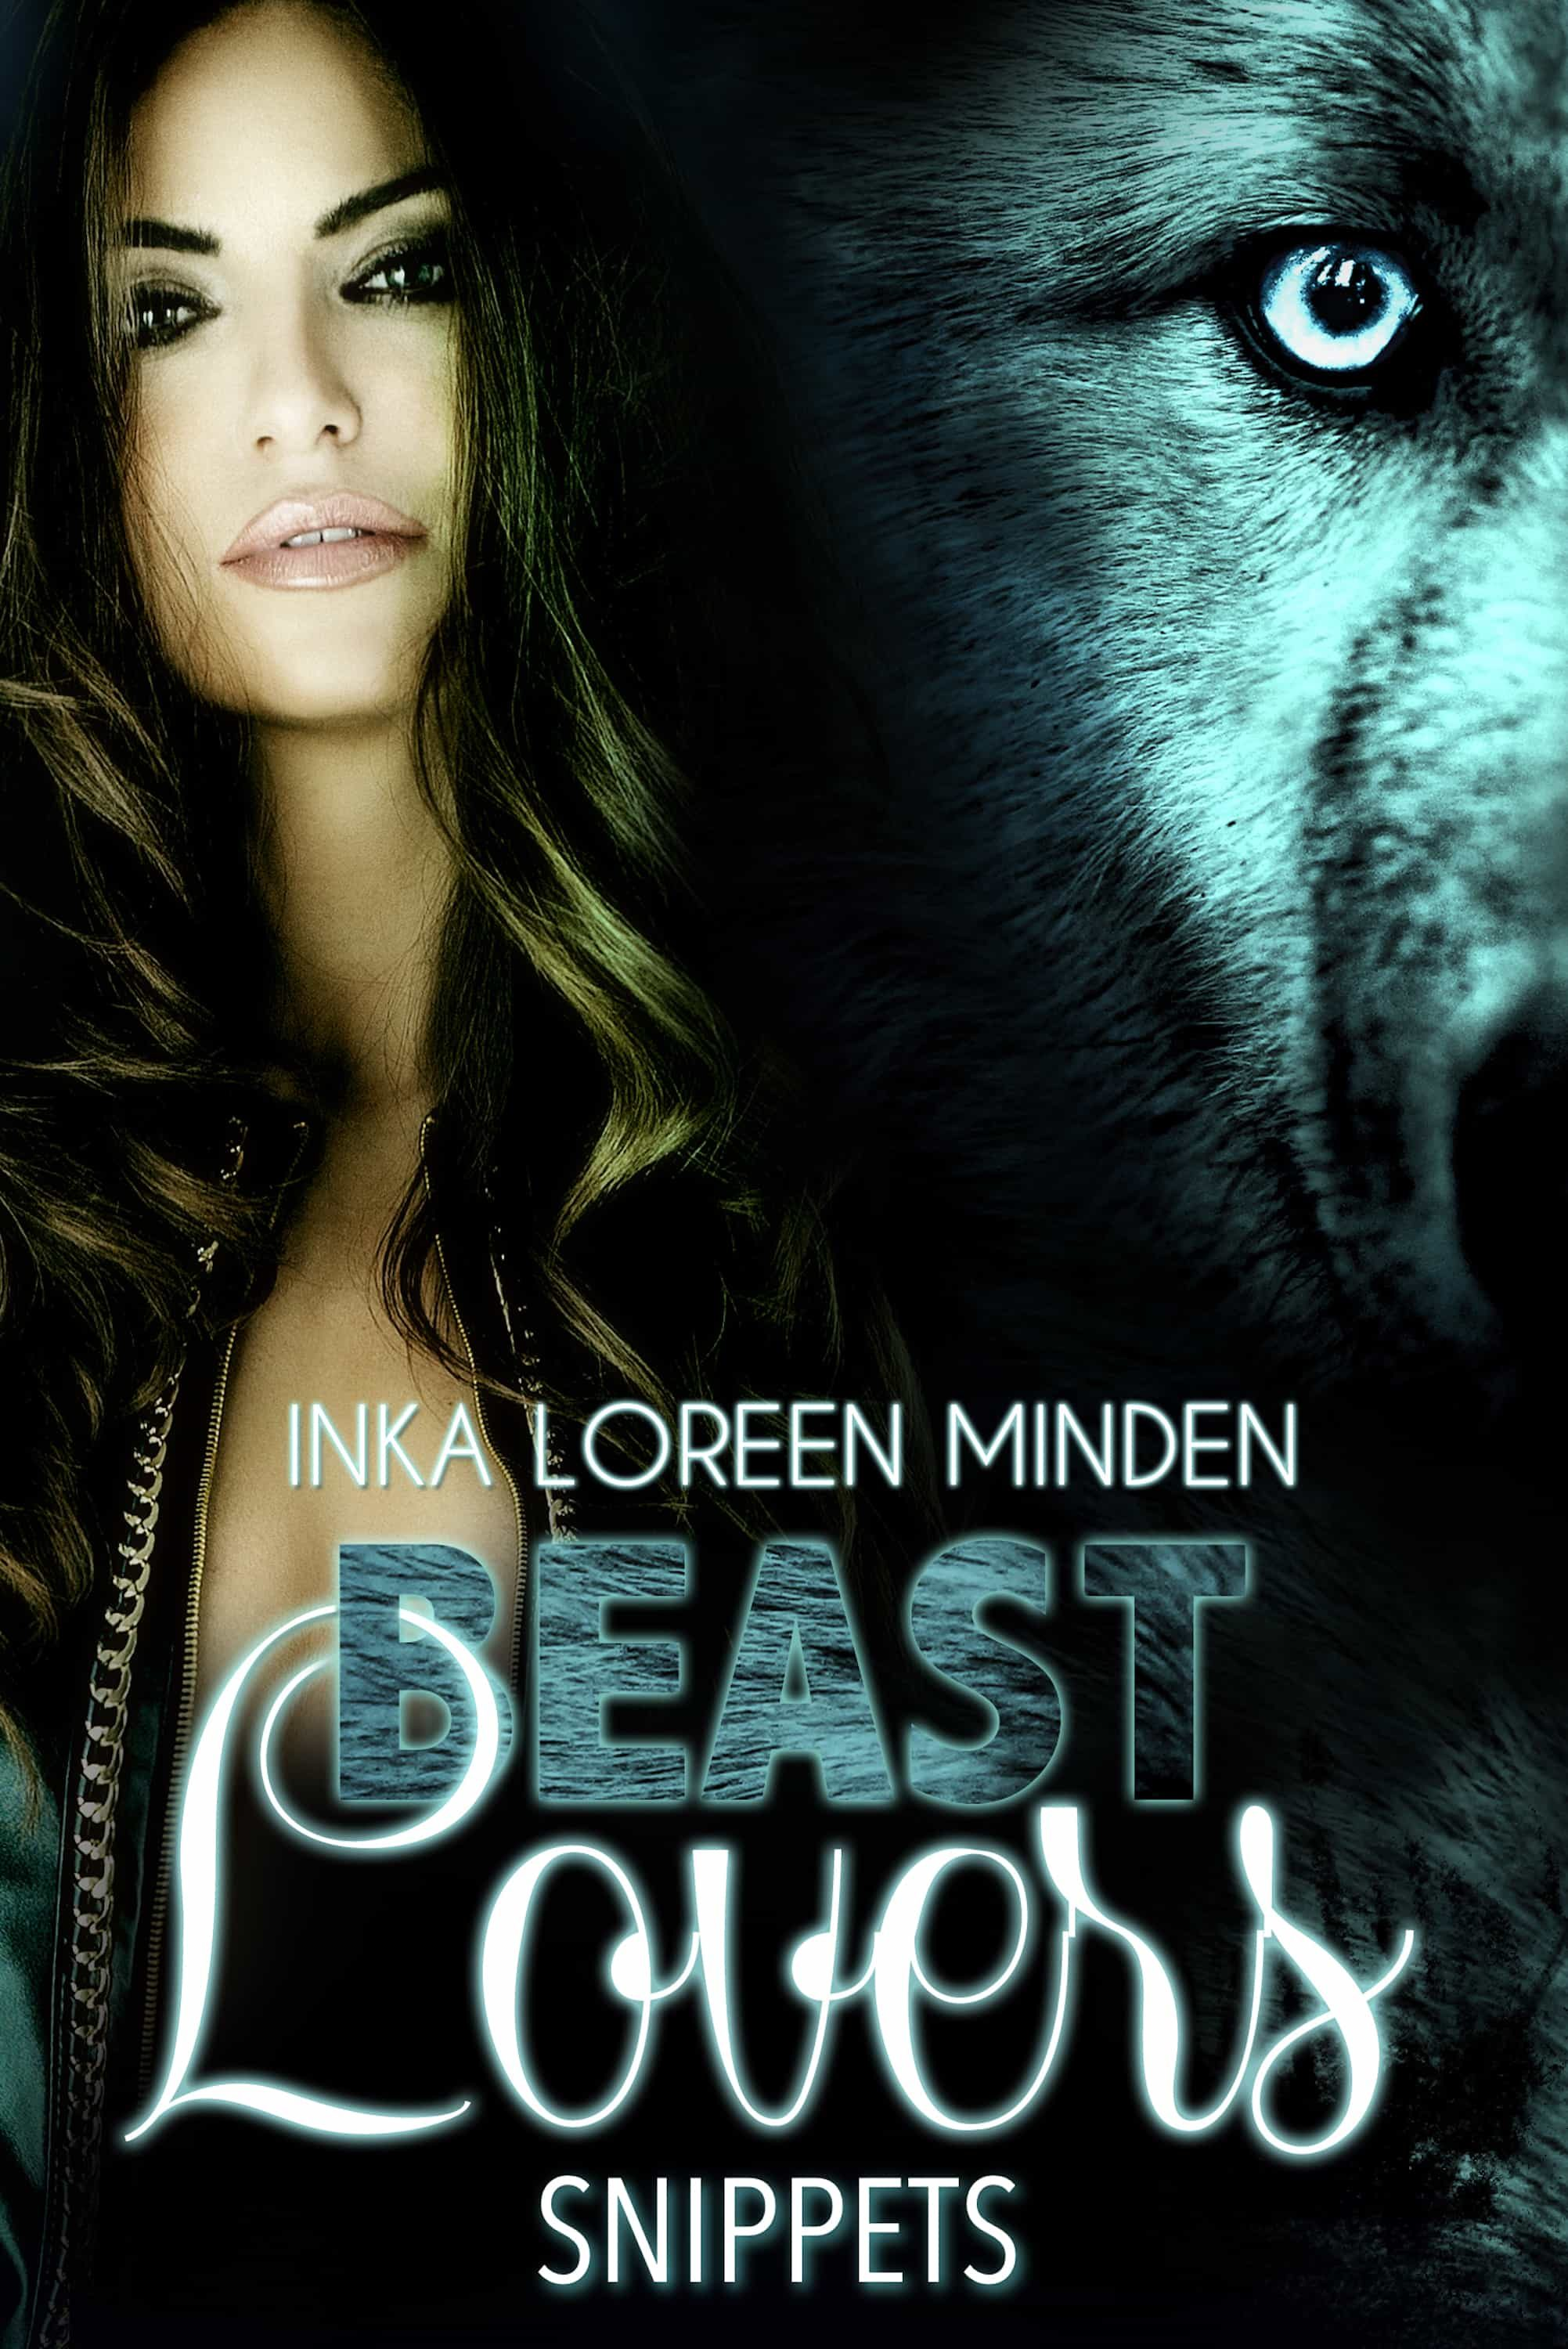 beast lovers snippets (ebook)-inka loreen minden-9783963700538